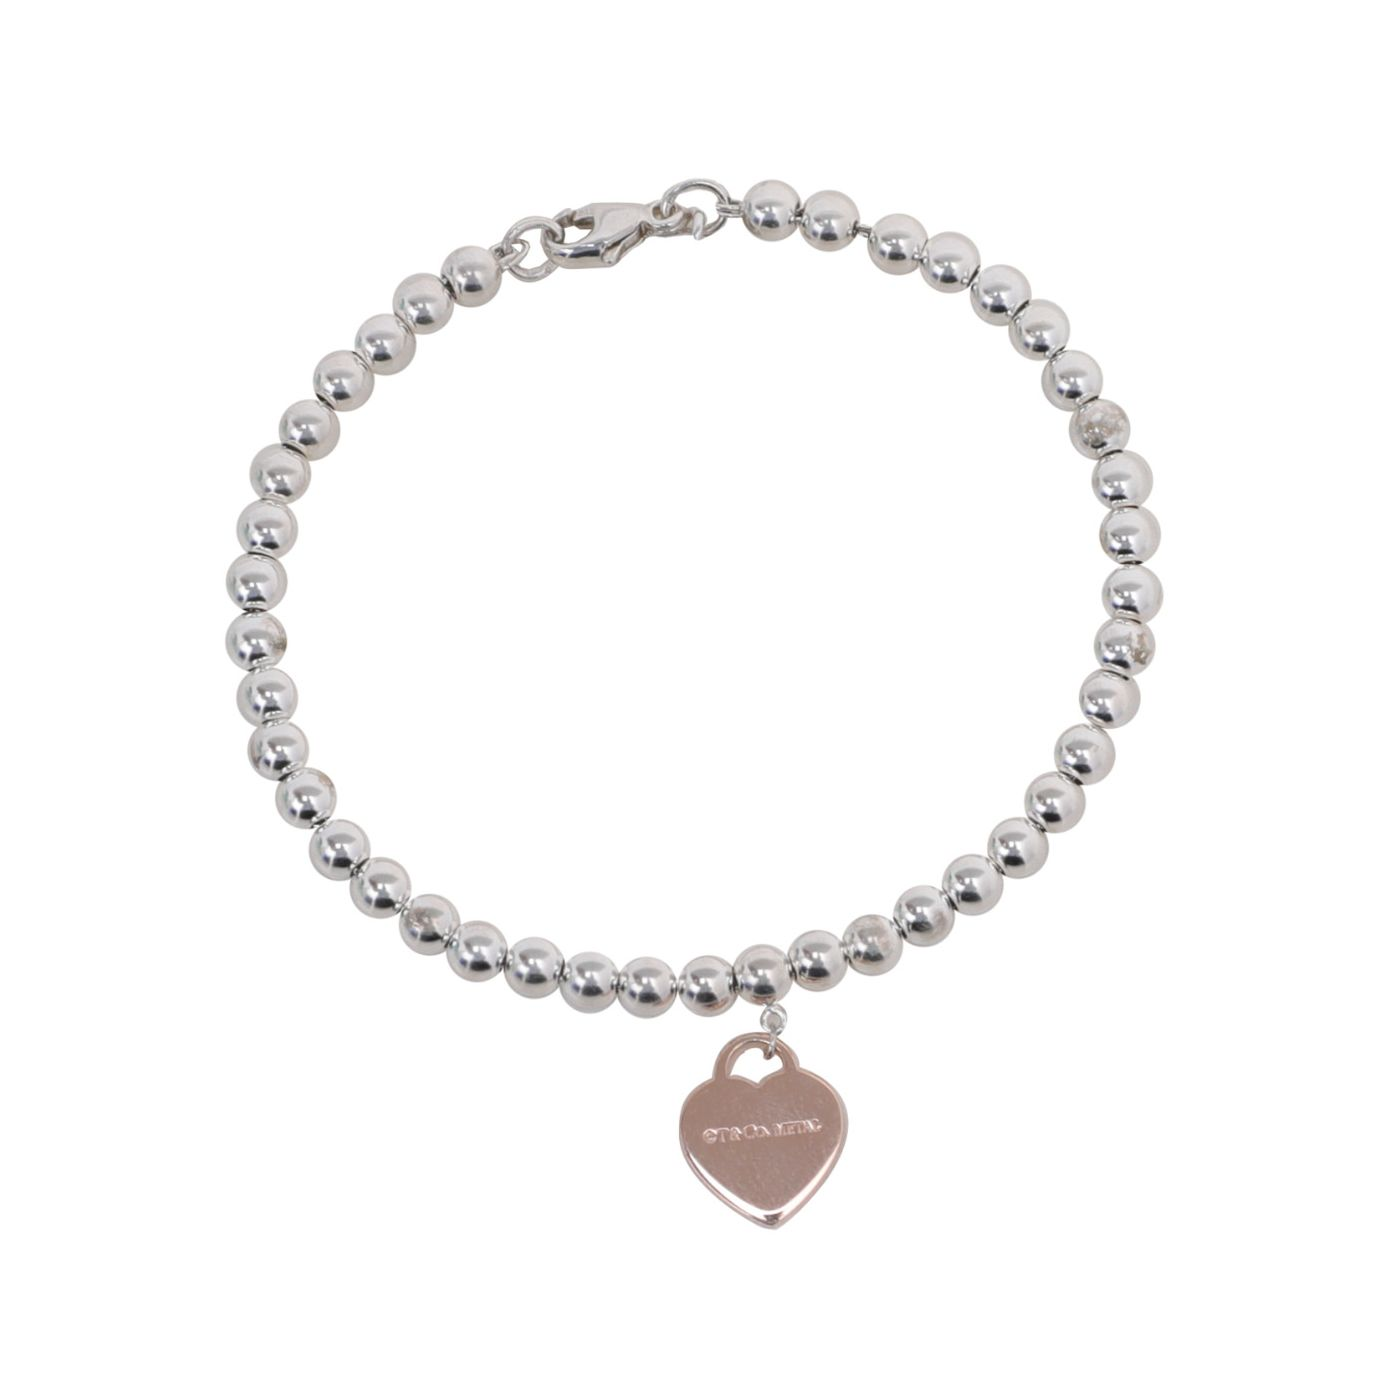 Tiffany & Co Silver Heart Bead Bracelet Return To Tiffany